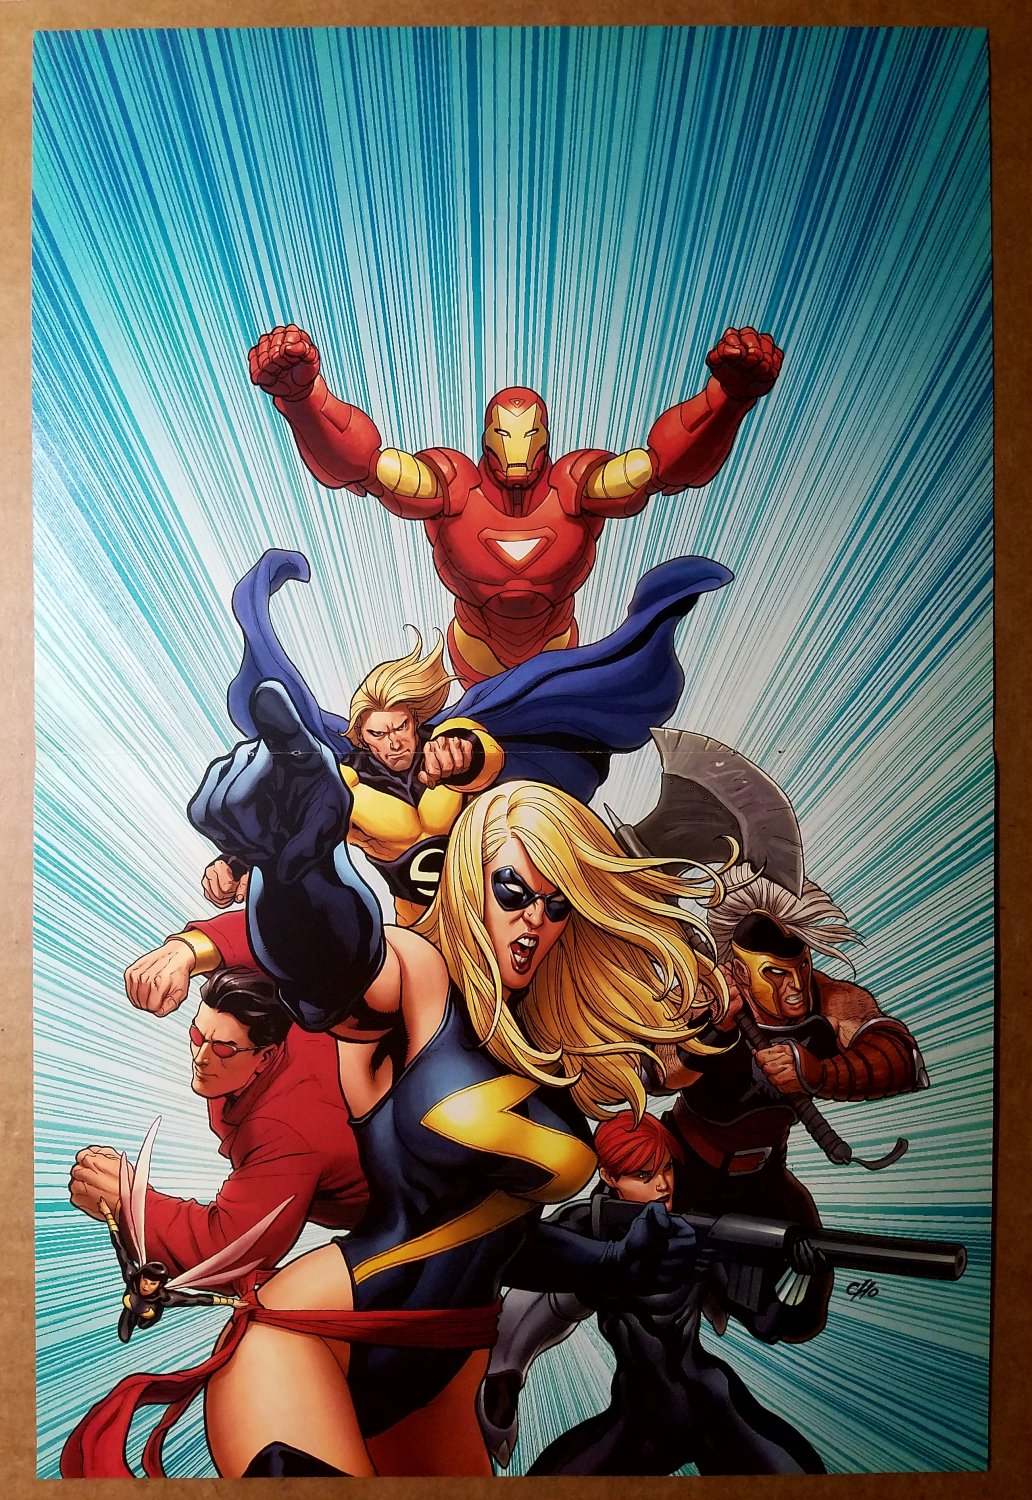 Avengers Ms Marvel Ares Black Widow Iron Man Marvel Comics Poster by Frank Cho